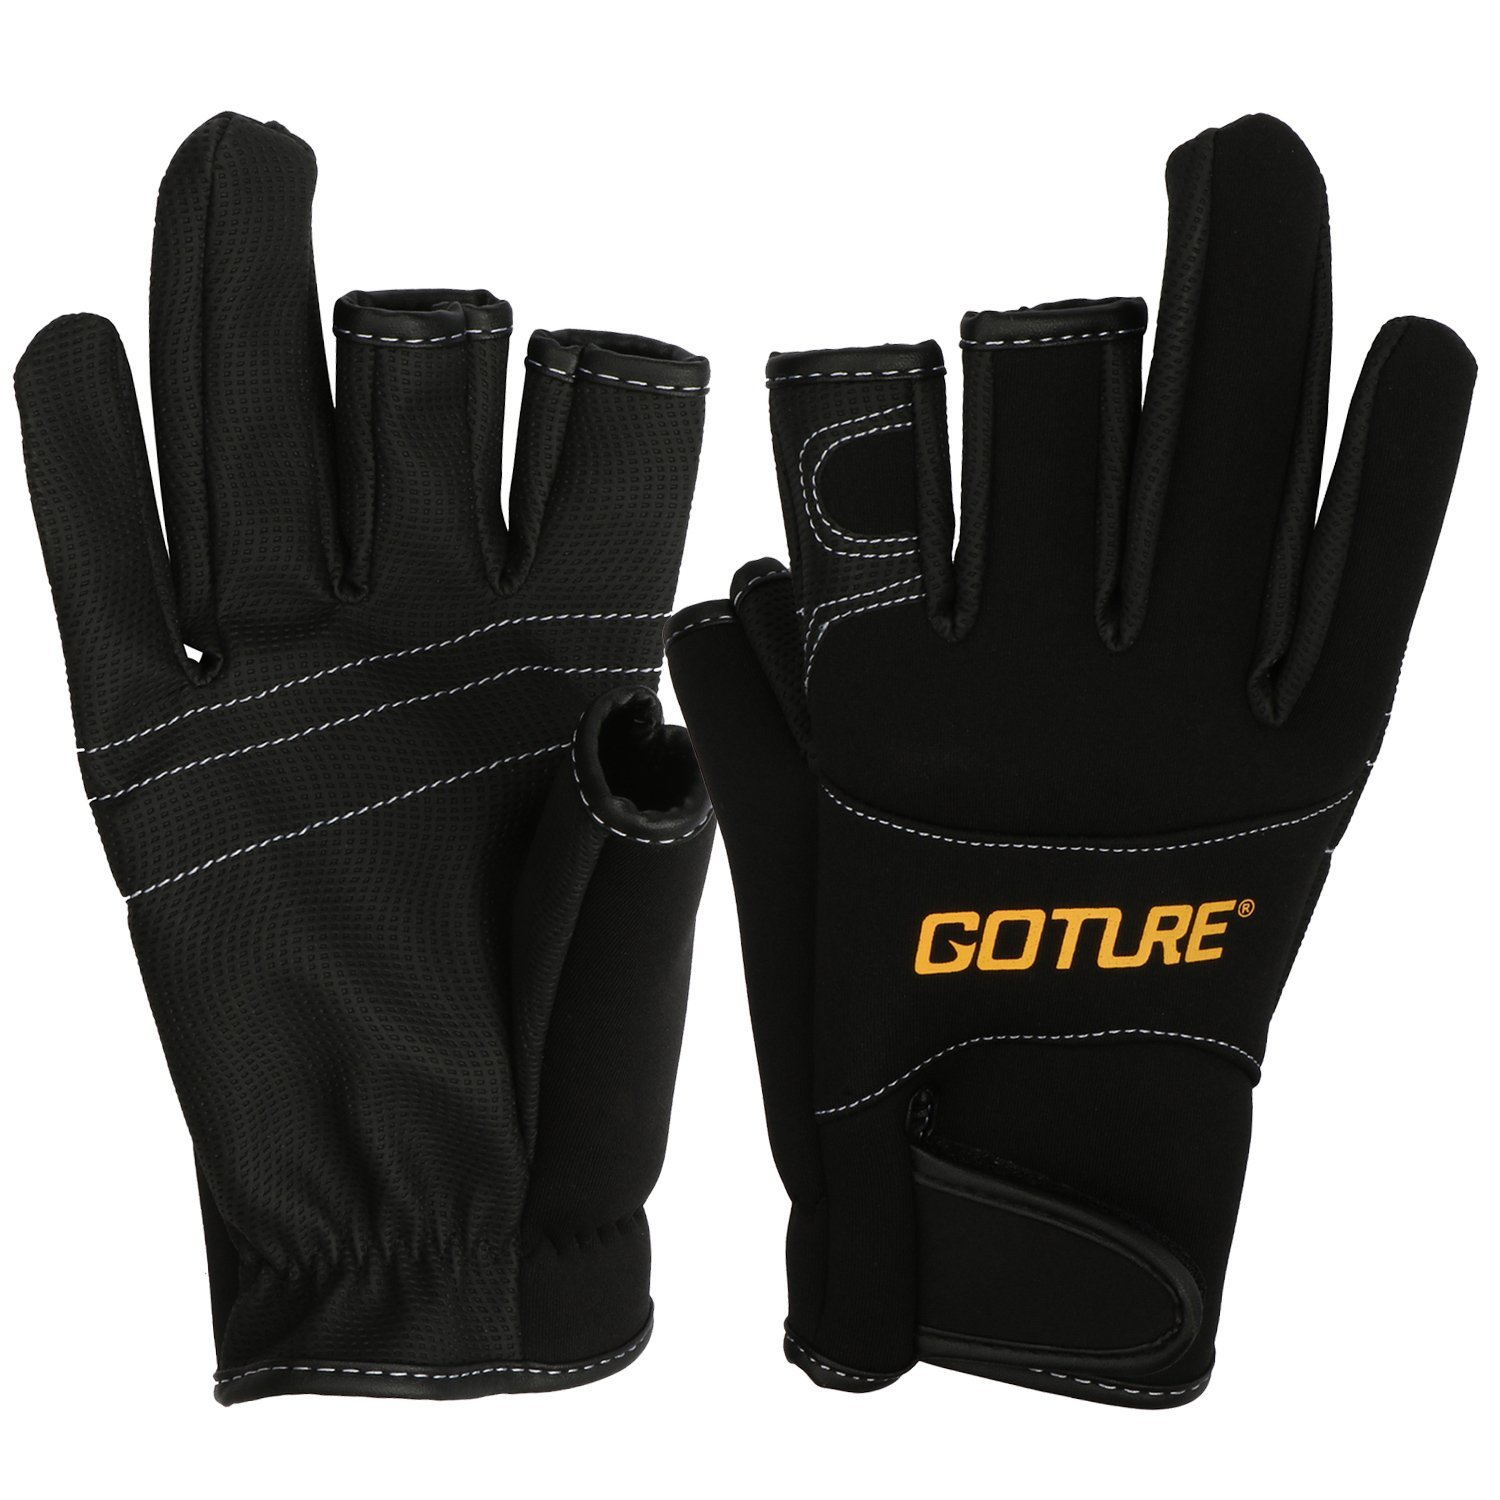 Shelure Anti-slip Fishing Gloves